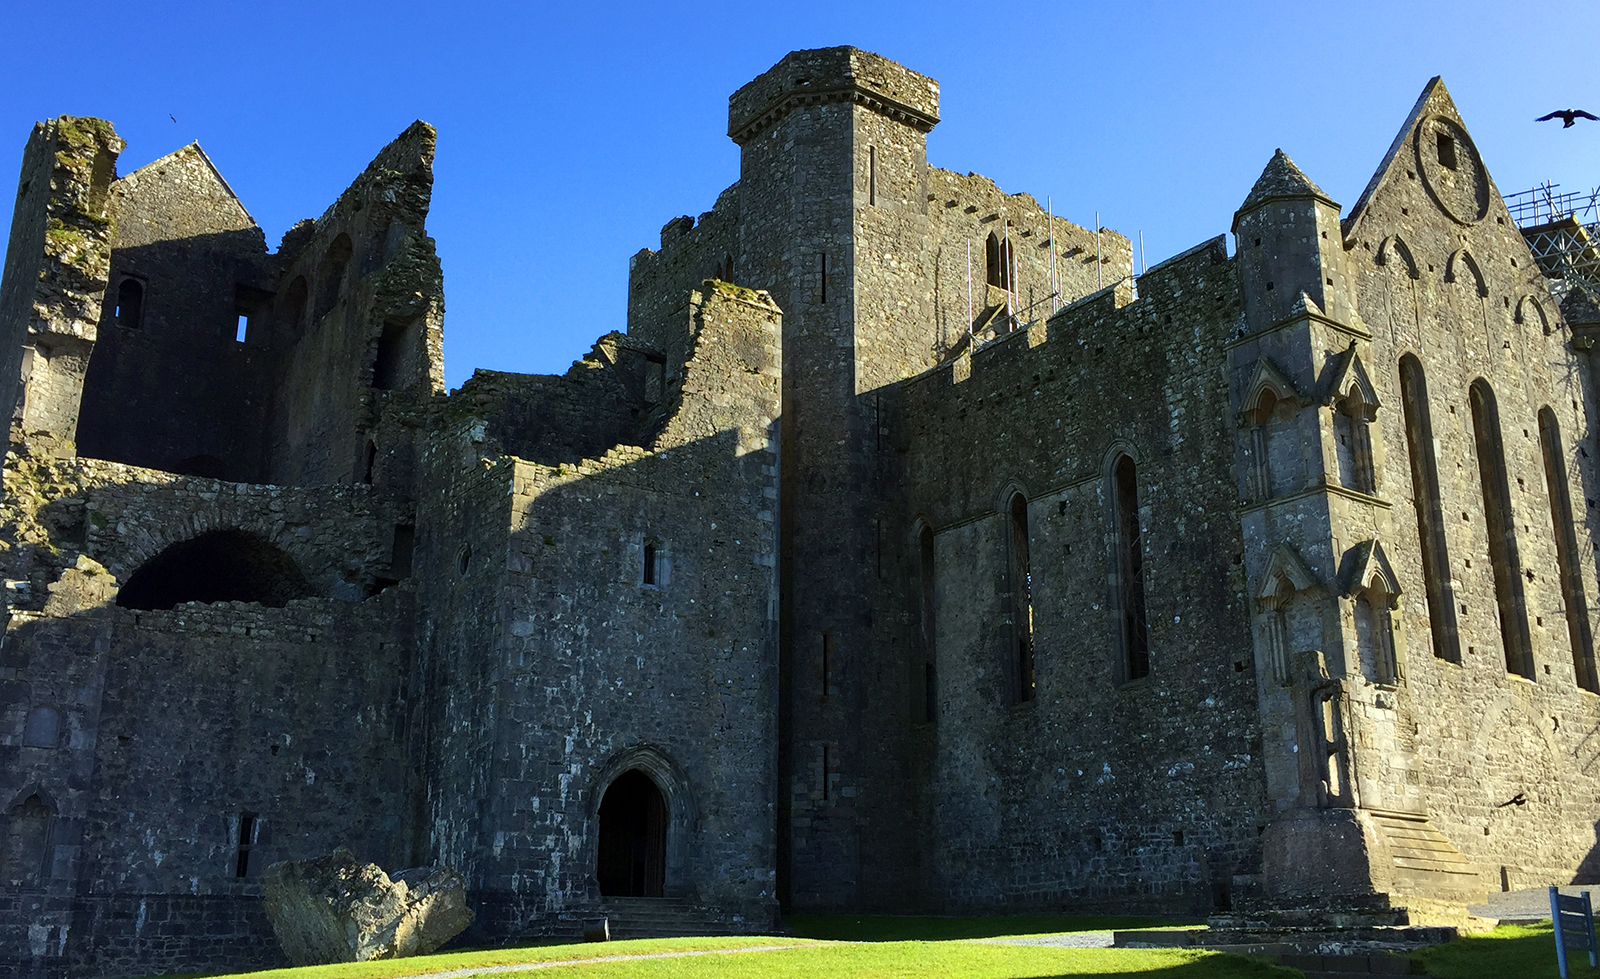 The_Most_Beautiful_Castles_in_Irleand_Rock_of_Cashel_Blarney_Dunamase_Main_Image